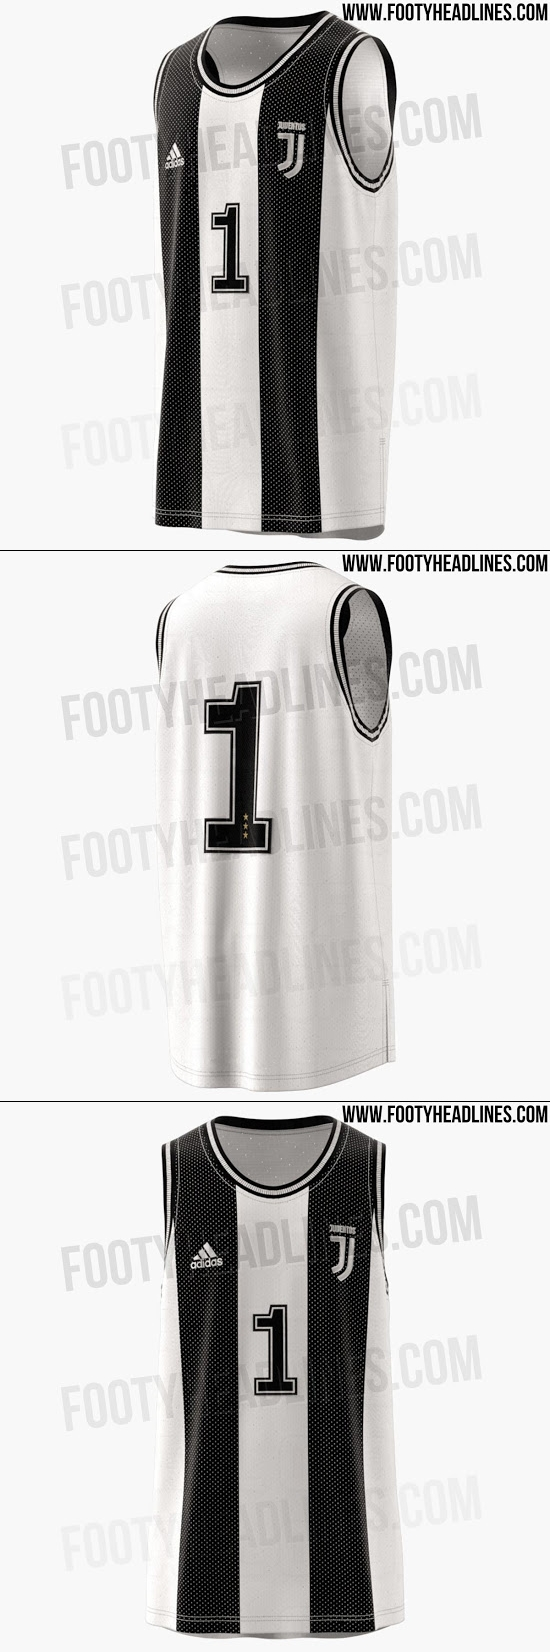 save off b9c2e 21029 Juventus to release basketball jersey, despite not having a ...